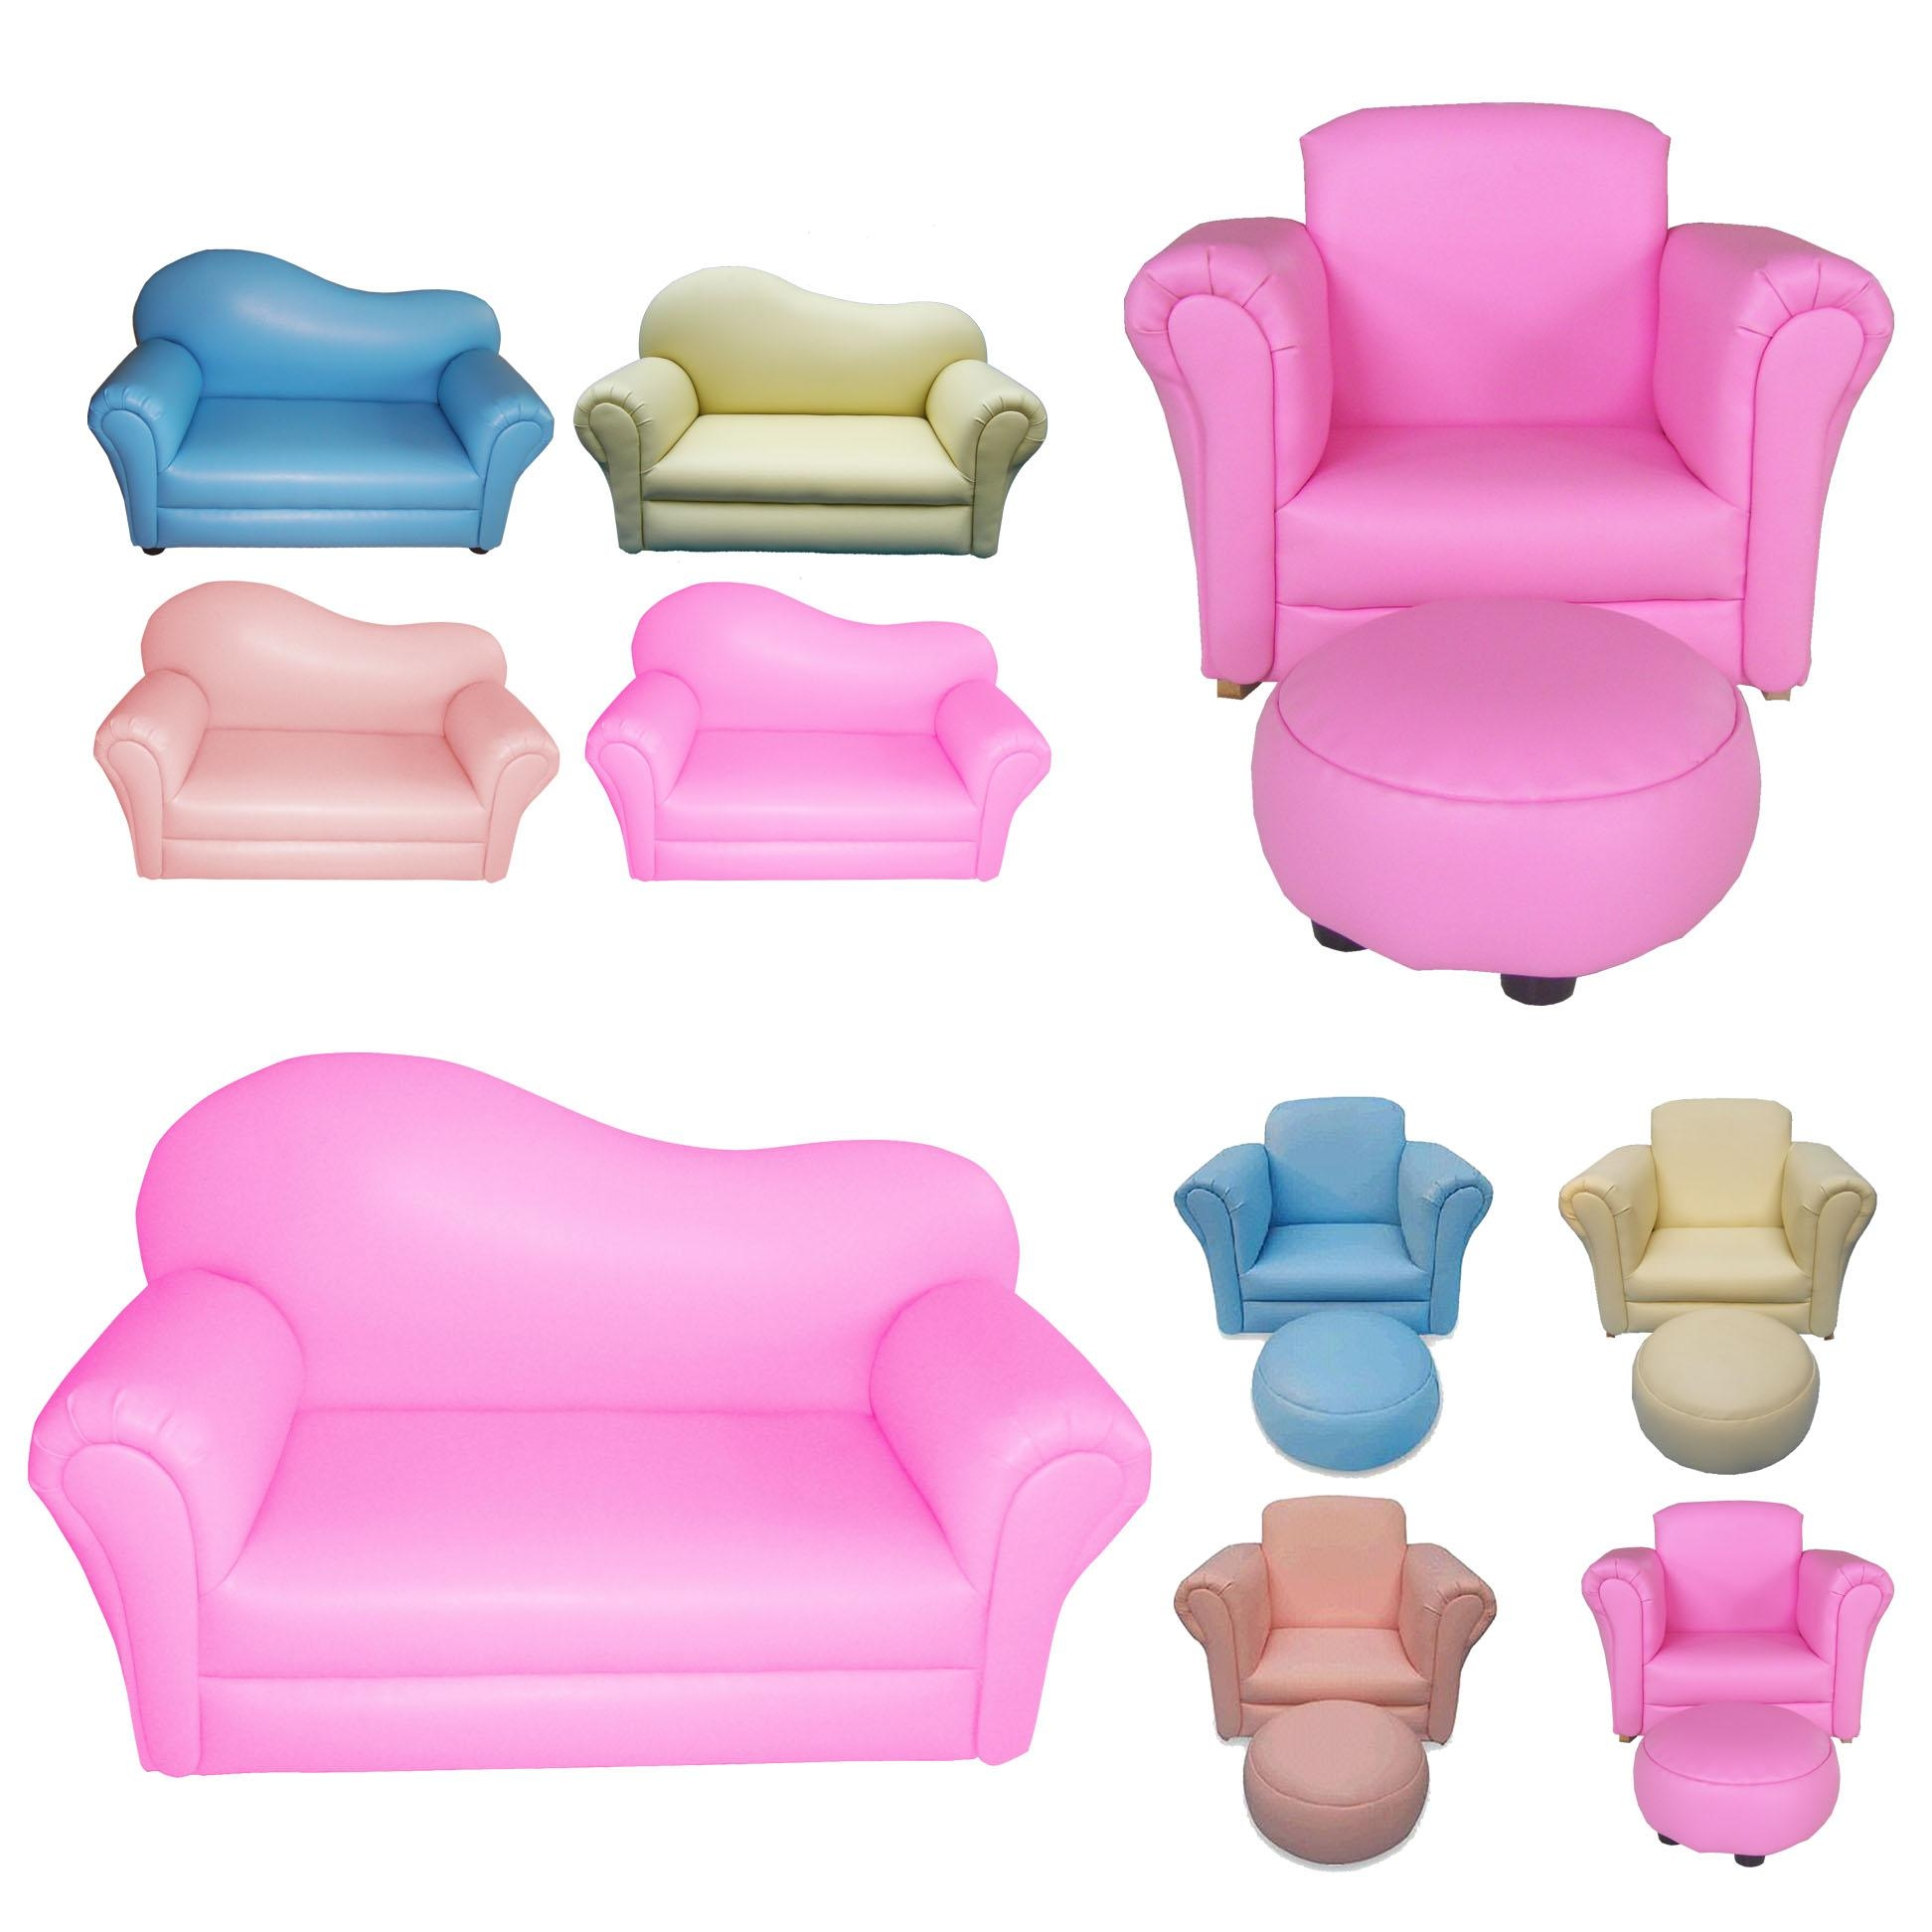 Toddler Sofa Chair 20 Top Personalized Kids Chairs And Sofas Sofa Ideas